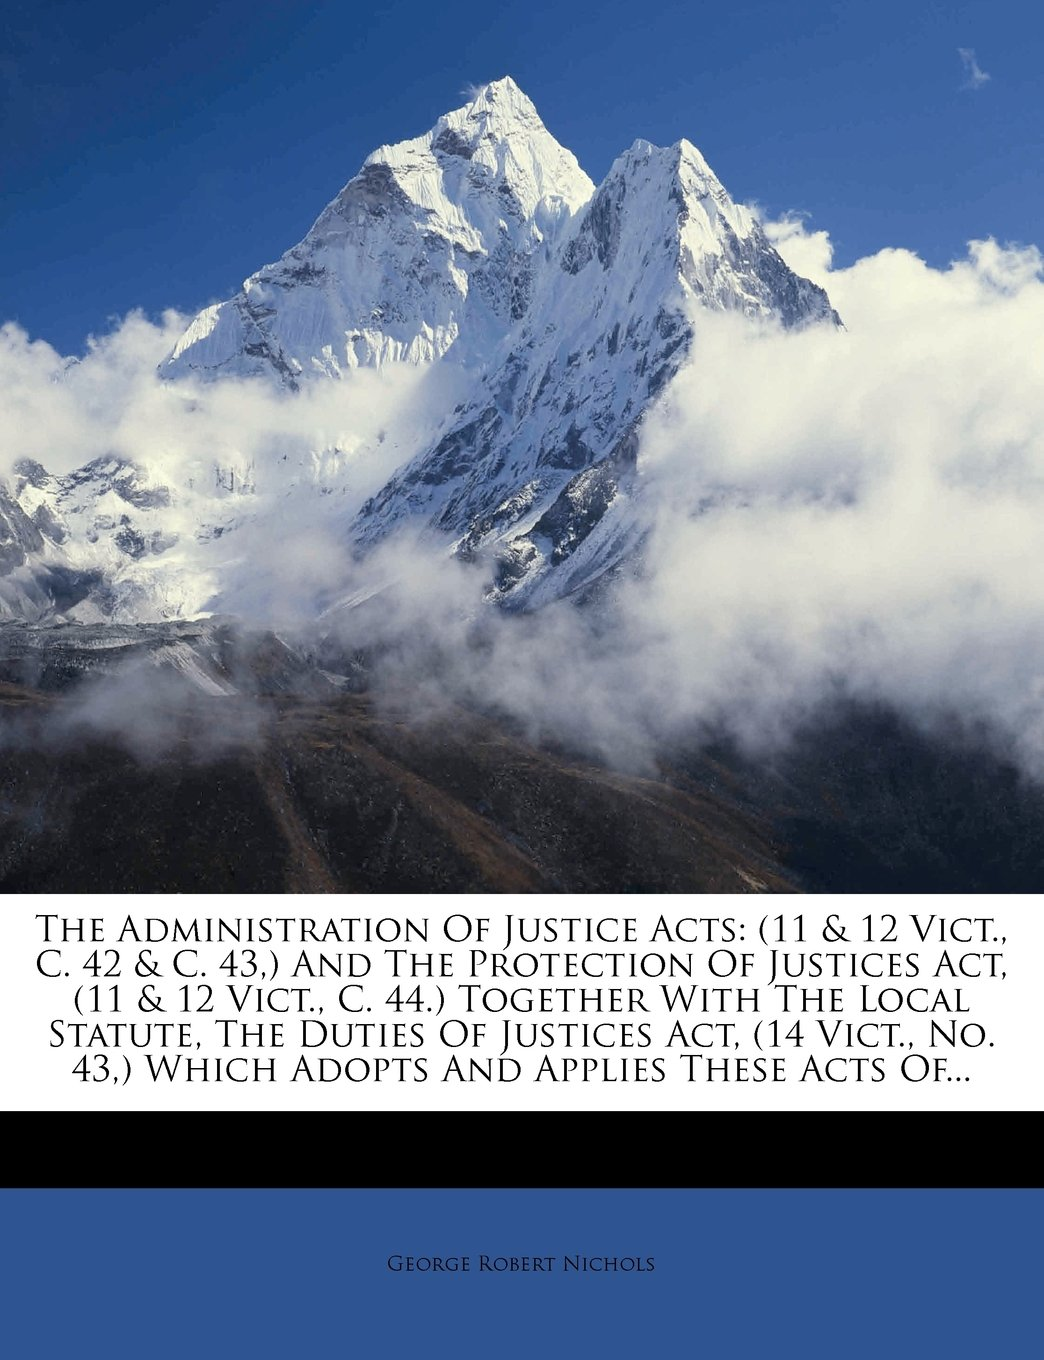 Download The Administration Of Justice Acts: (11 & 12 Vict., C. 42 & C. 43,) And The Protection Of Justices Act, (11 & 12 Vict., C. 44.) Together With The ... Which Adopts And Applies These Acts Of... ebook